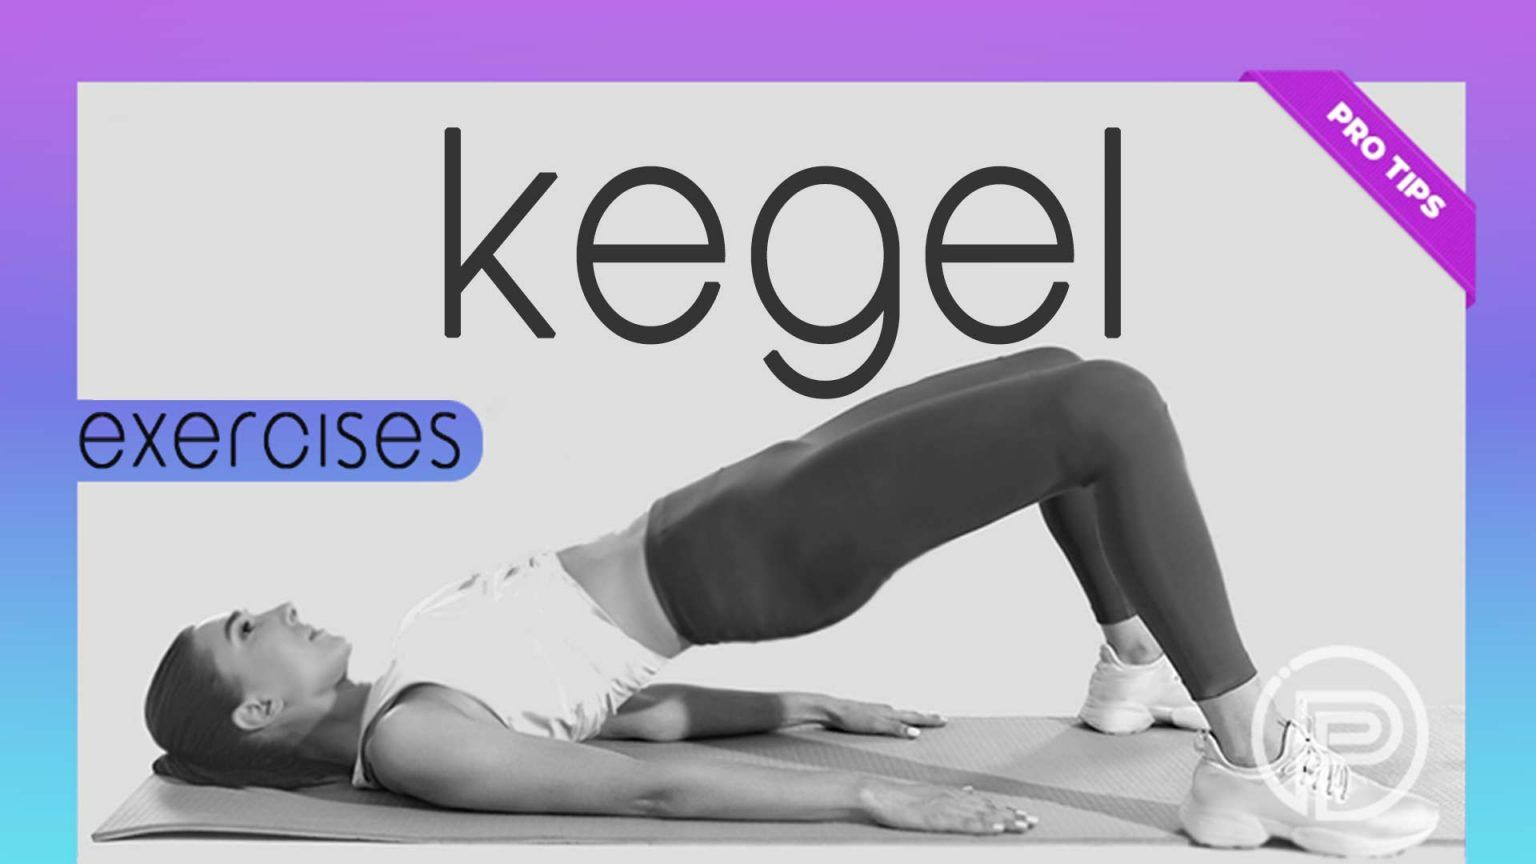 46+ Yoga exercises to relax pelvic floor muscles ideas